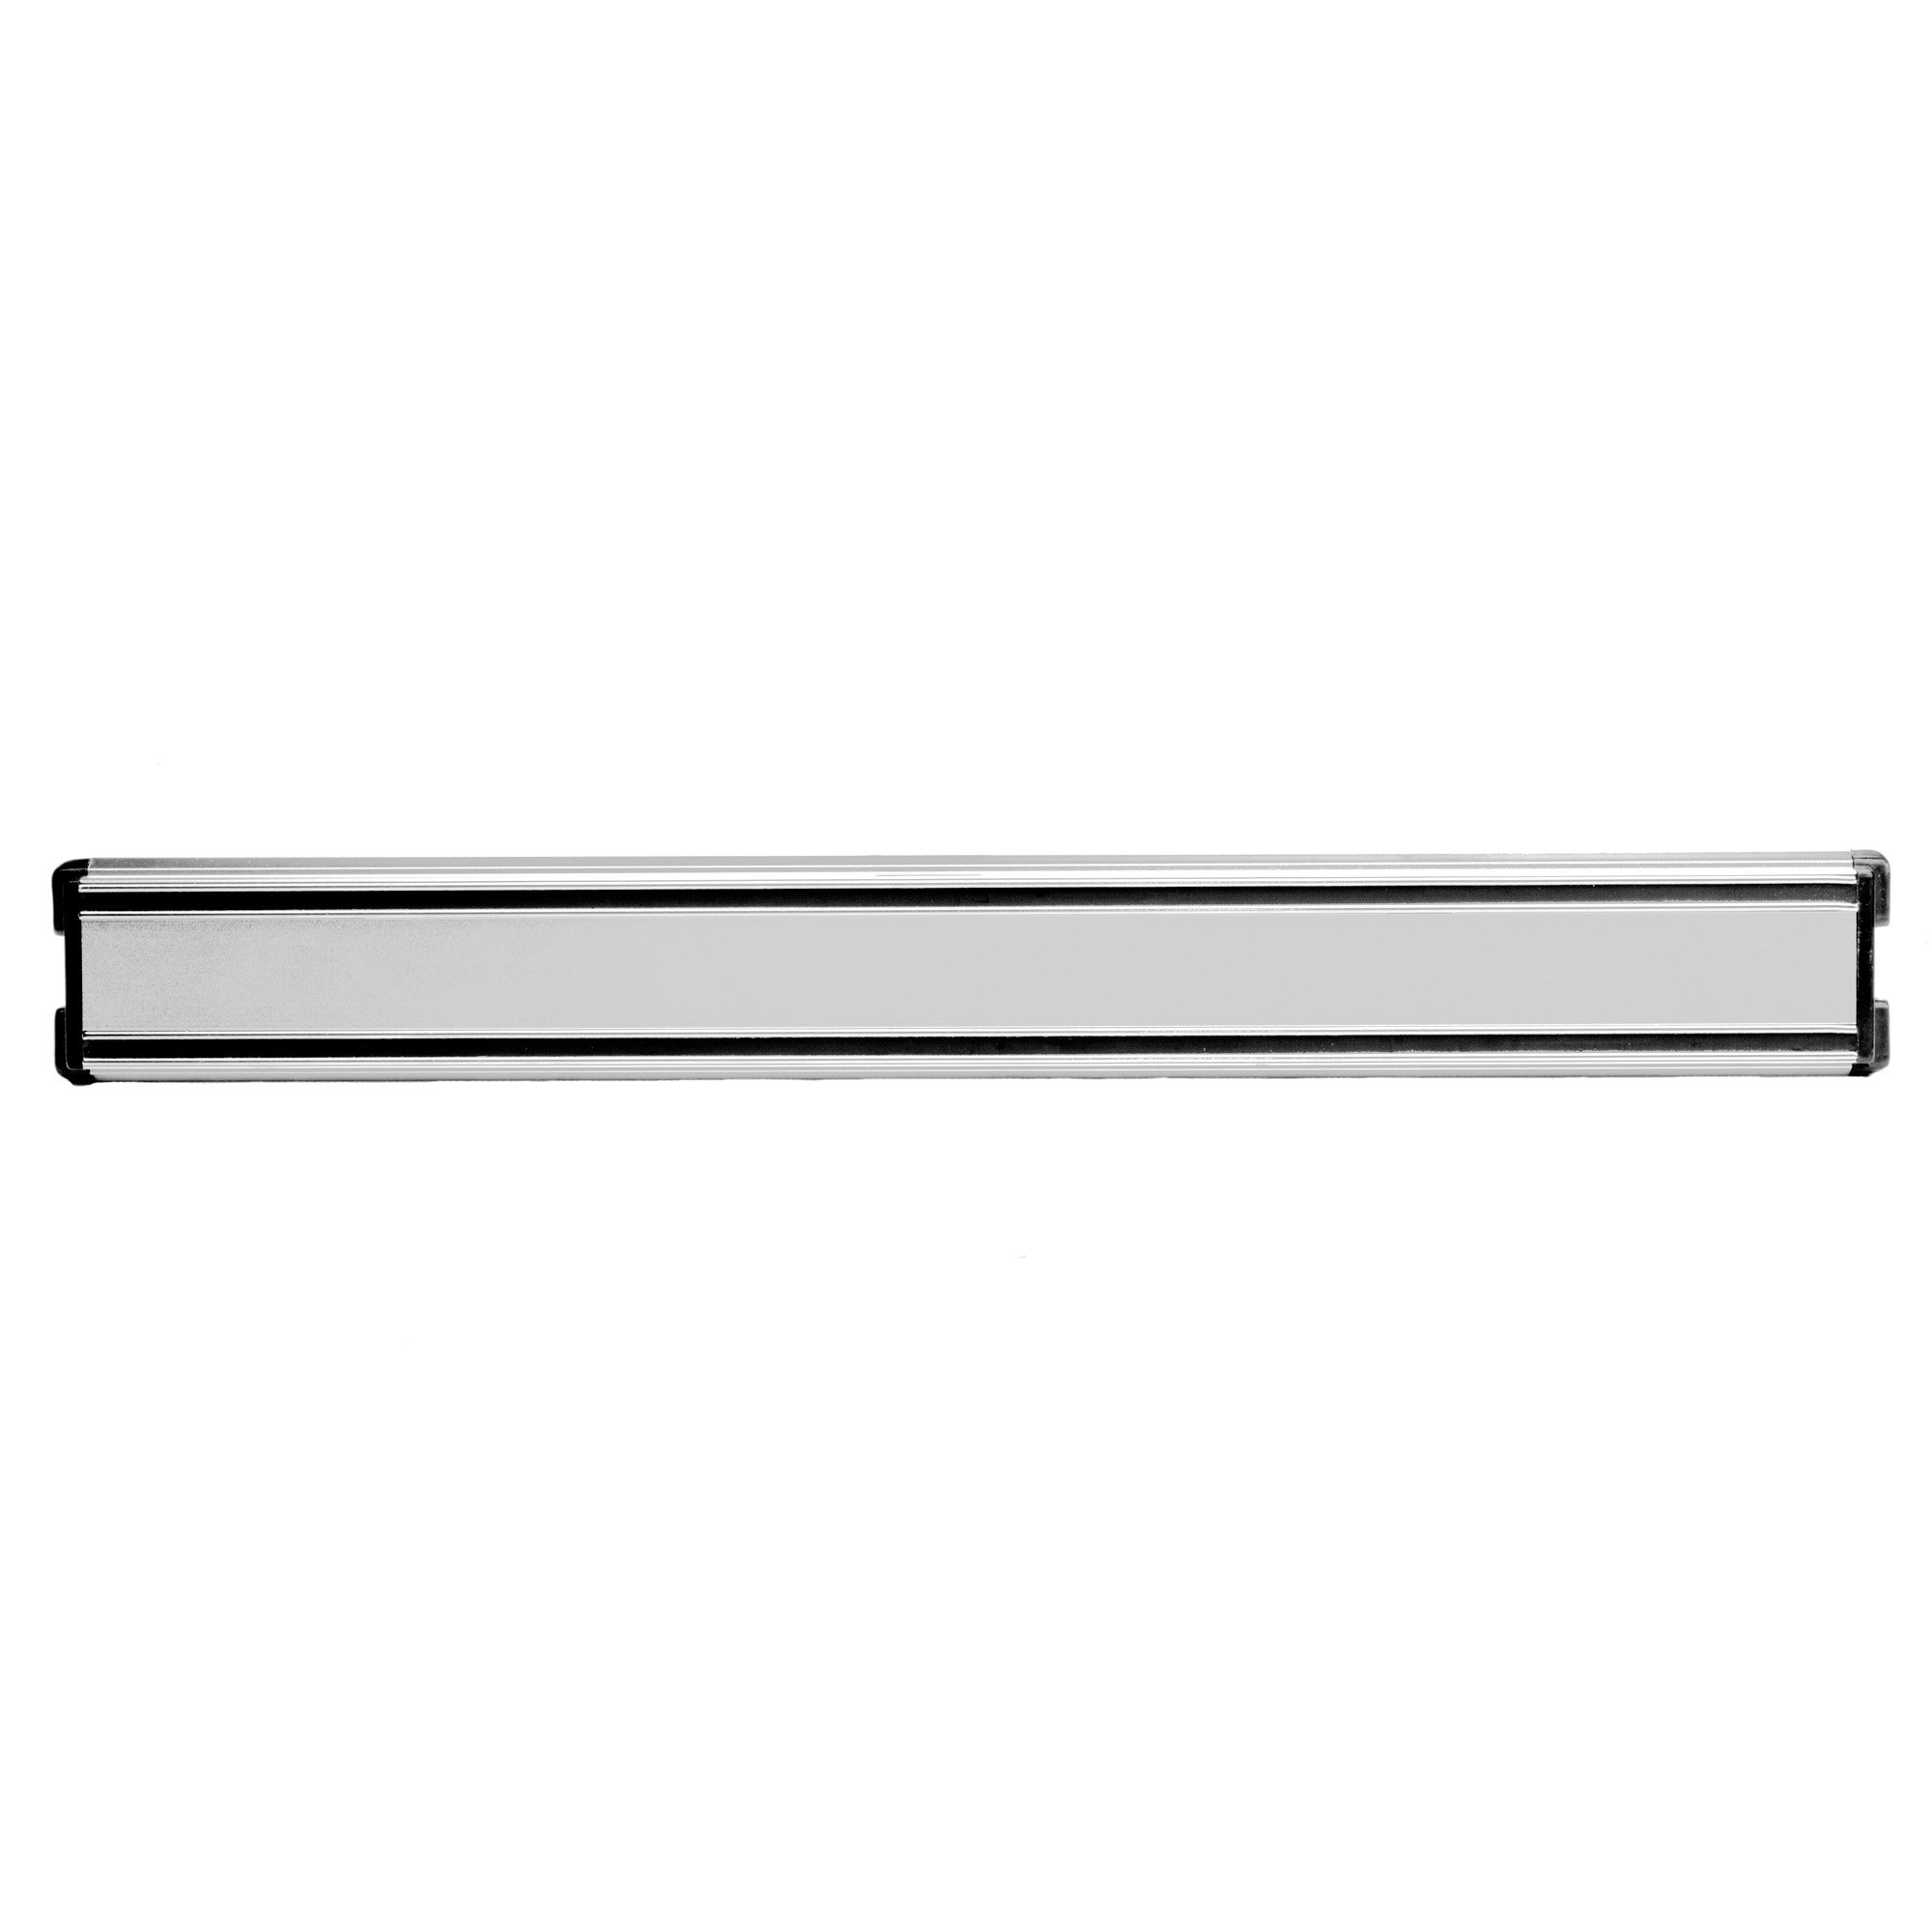 Nuvita Aluminum Magnet 14 inch Knife Bar - Silver by Nuvita (Image #4)